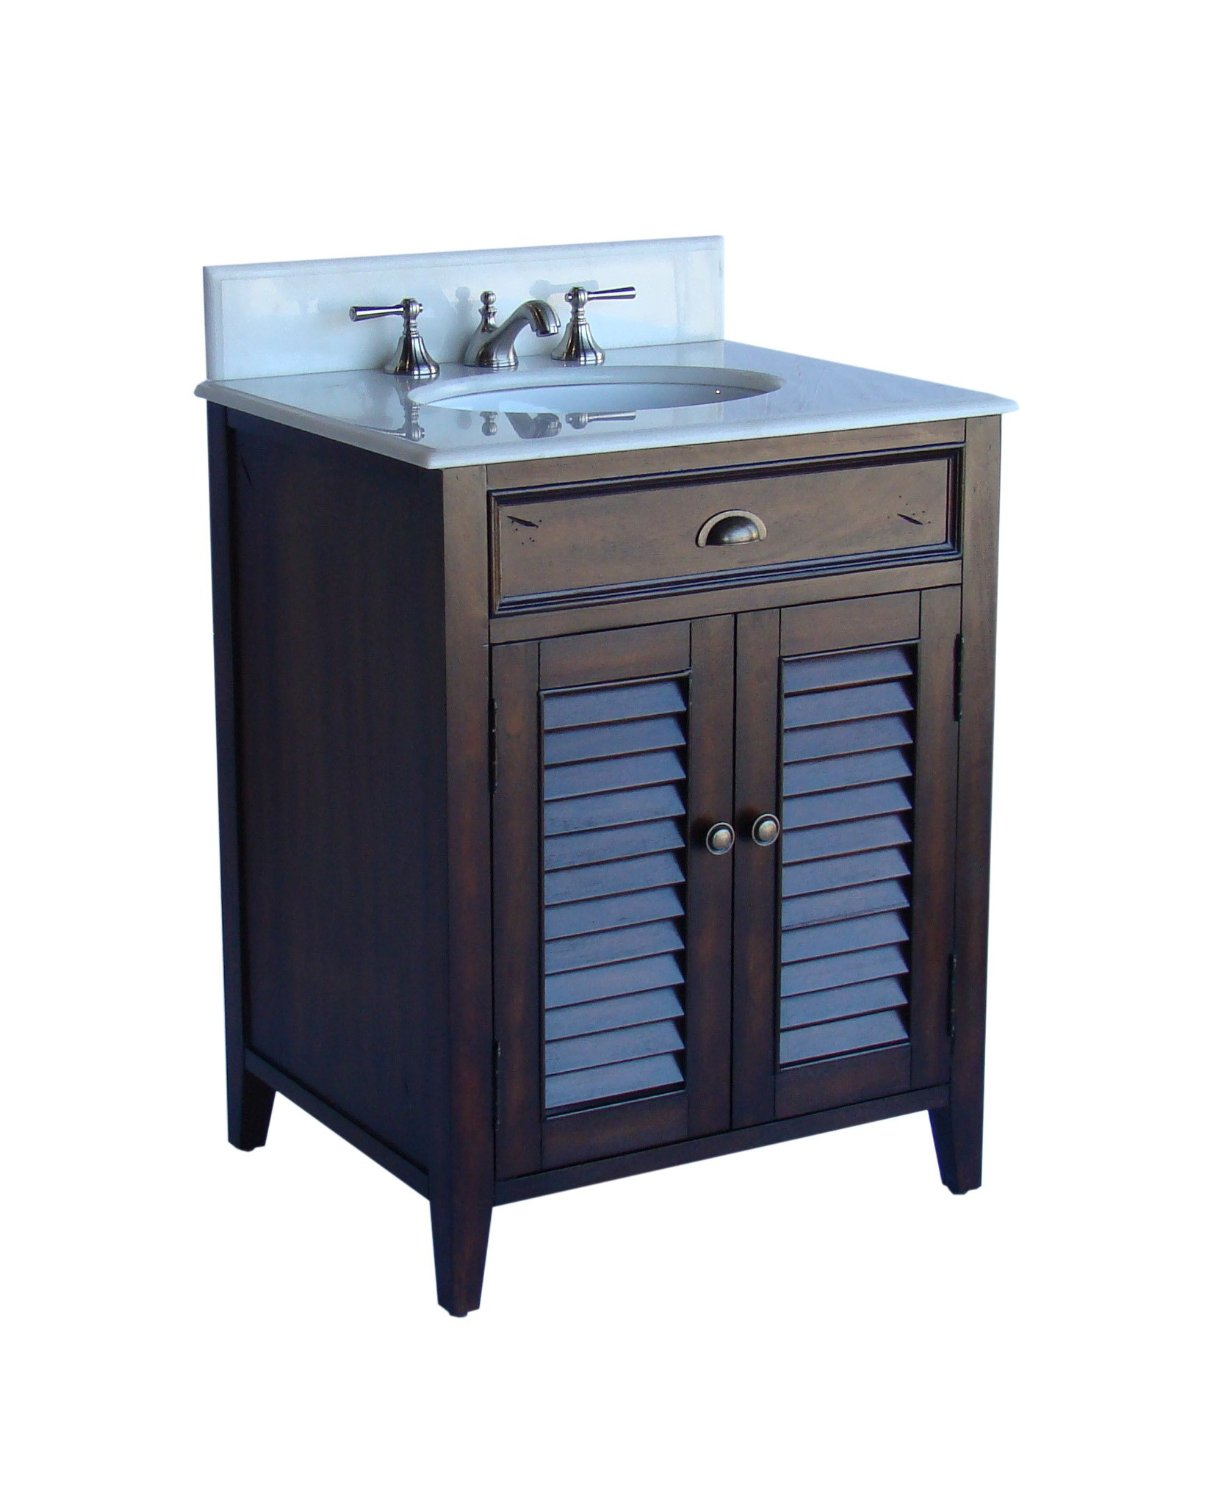 Pretty Average Cost Of Bath Fitters Small Bathroom Cabinets Secaucus Nj Square Gray Bathroom Vanity Lowes Renovation Ideas For A Small Bathroom Old Waterfall Double Sink Bathroom Vanity Set OrangeAverage Price Small Bathroom 26 Inch Bathroom Vanity